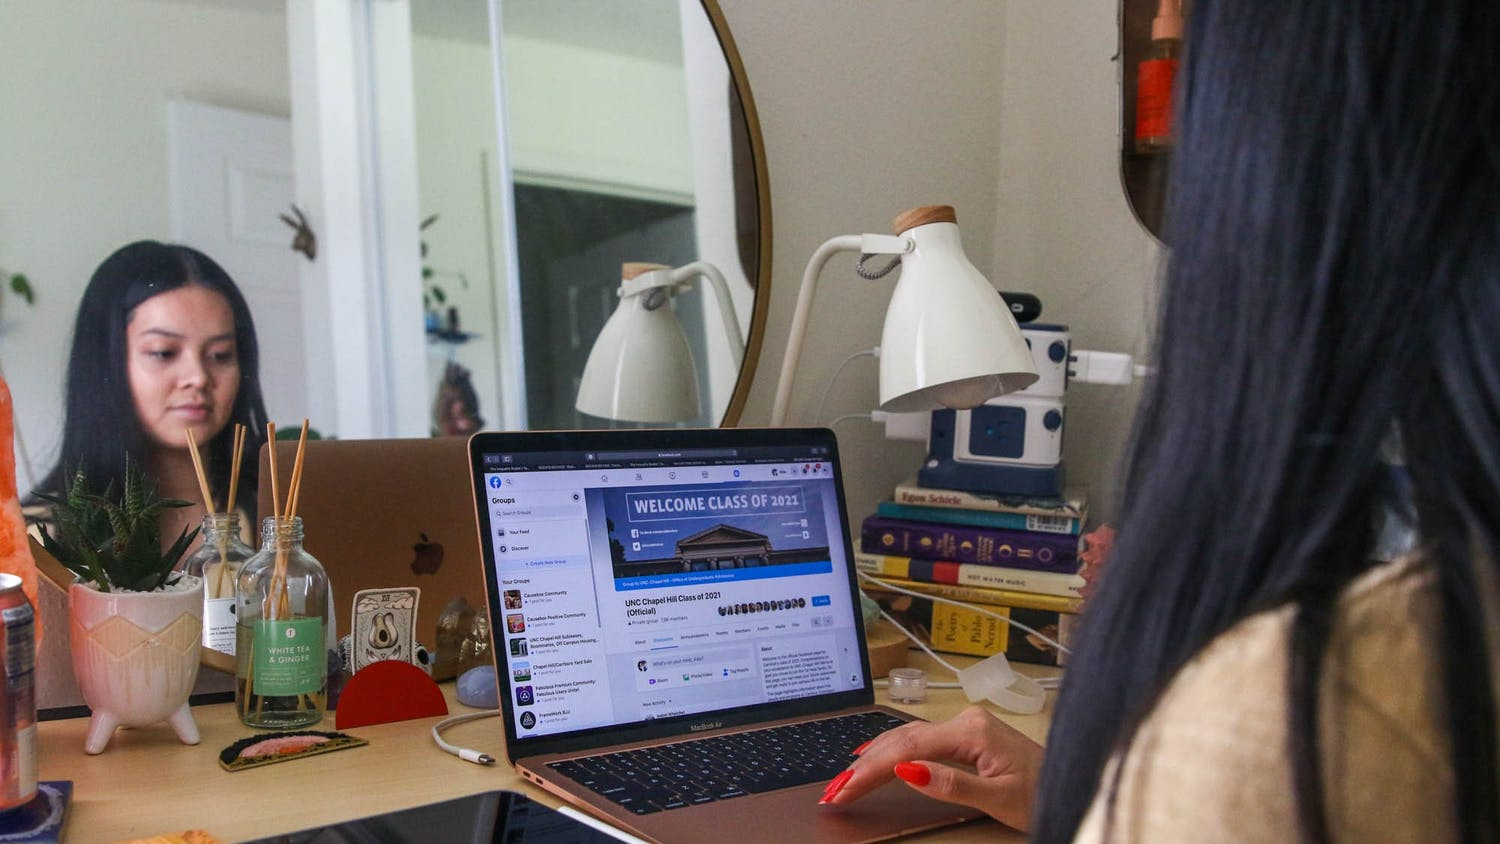 DTH photo illustration depicting a student searching through UNC's Facebook groups to find other students to connect with during the COVID-19 pandemic and online learning.